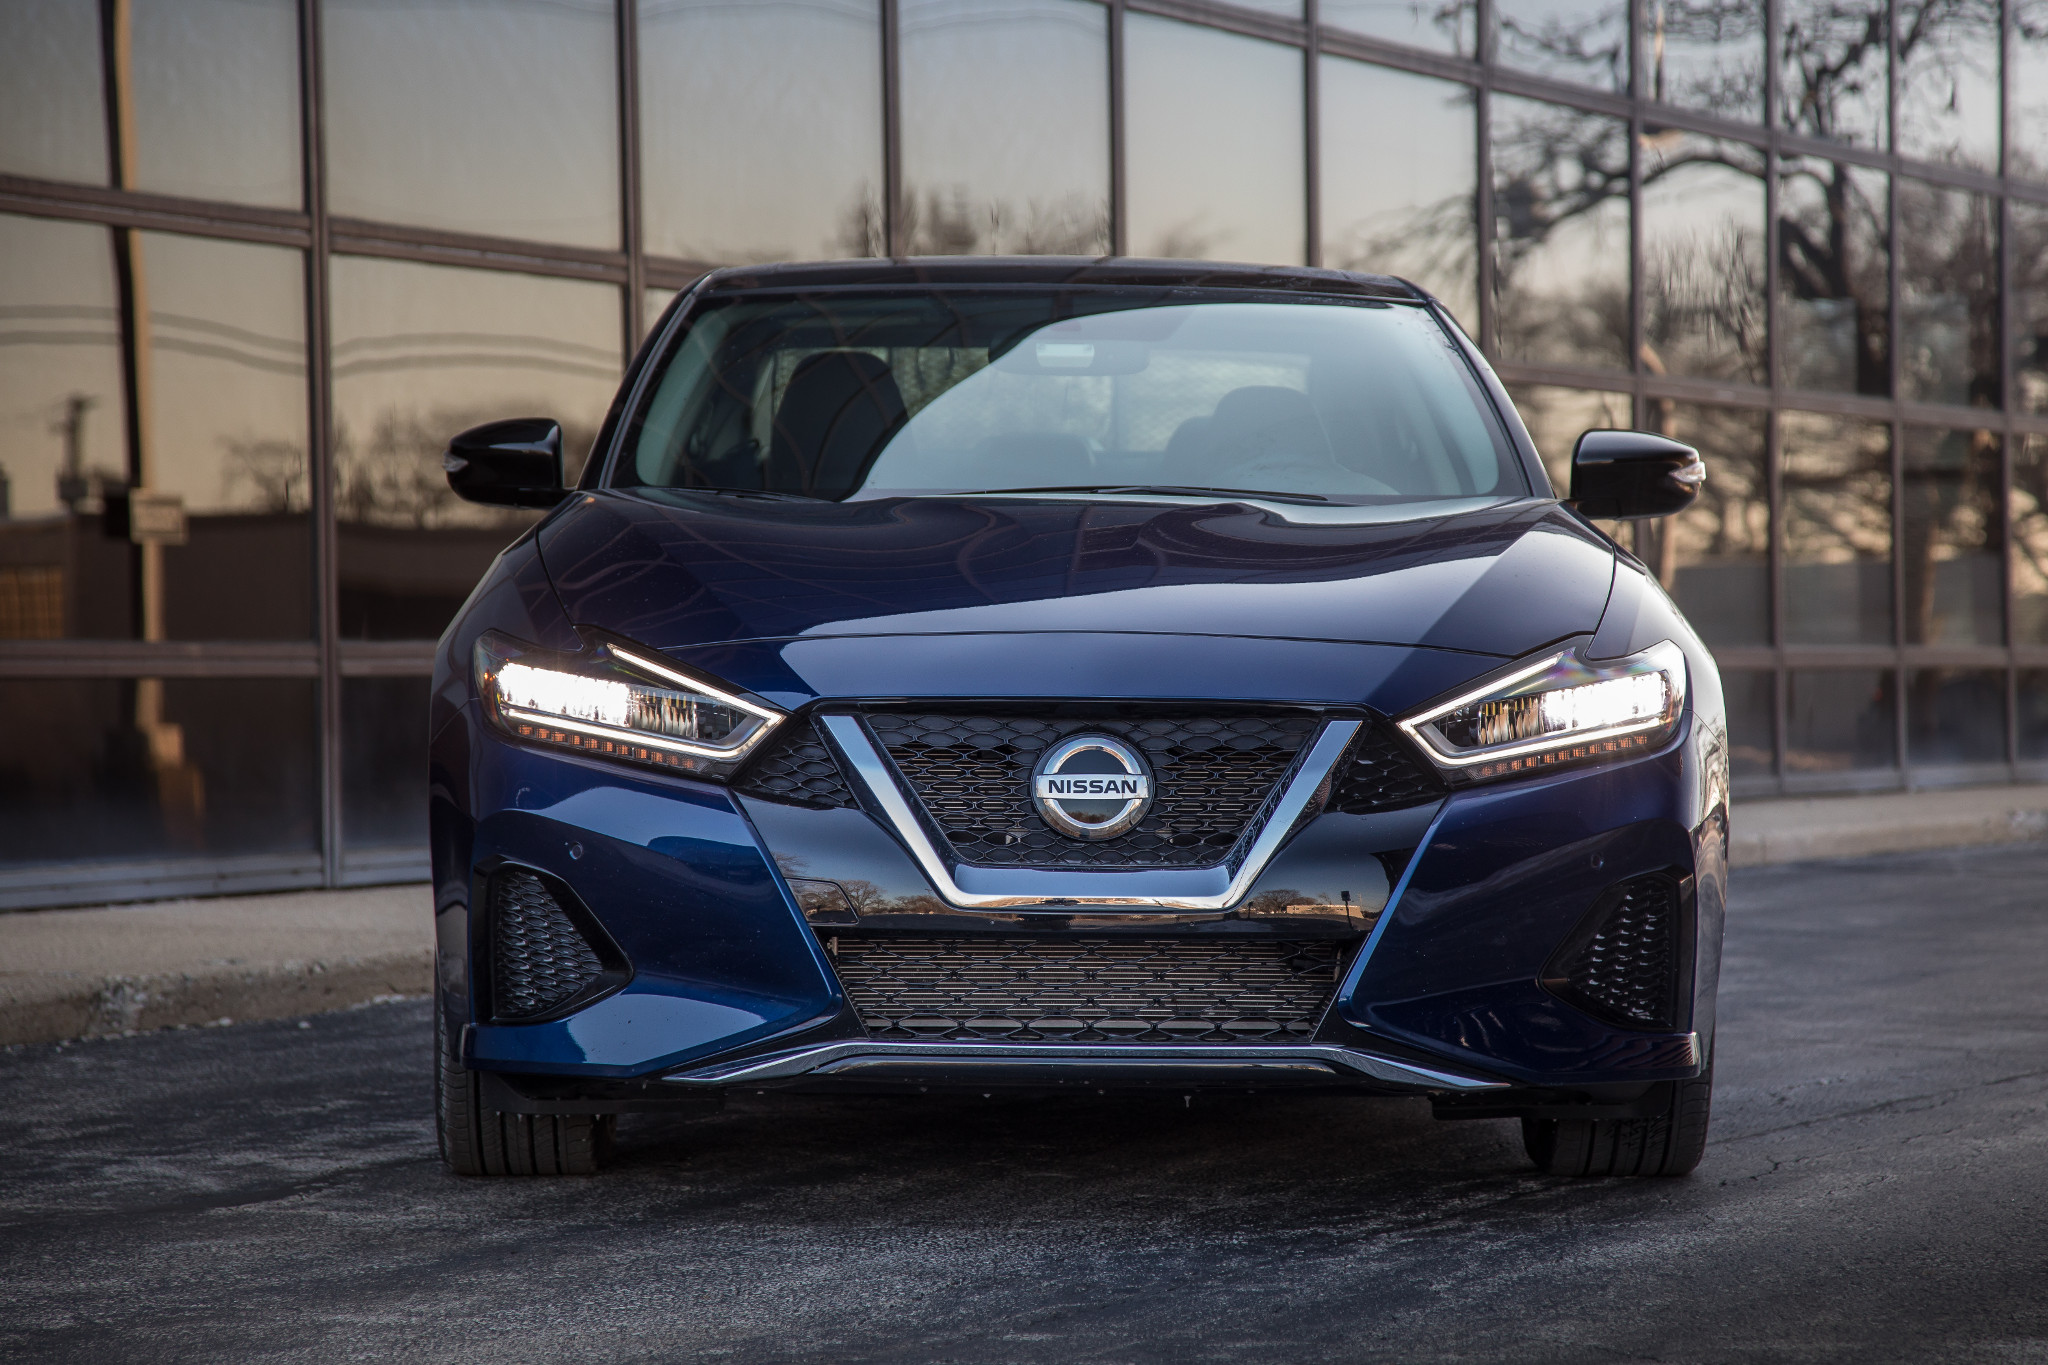 2019 Nissan Maxima 2 Things We Like And Um 4 Things We